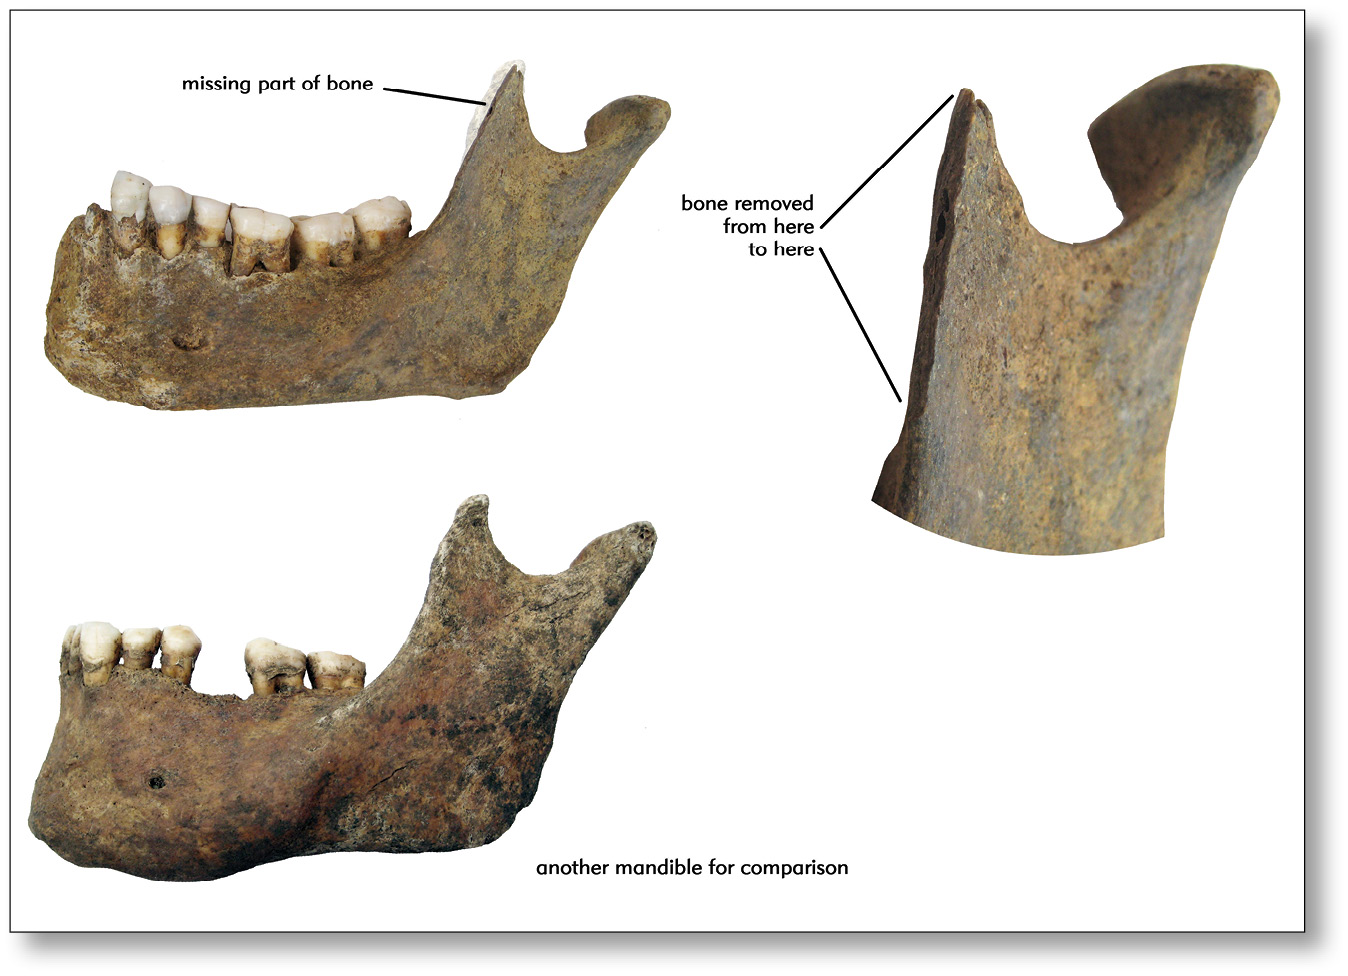 top A human mandible found during the excavation. A strip of bone has been sliced off by a sharp implement, perhaps a sword. above This tibia (shinbone) has been cut apart by a sharp implement. Could it be that someone sheltering behind a shield exposed their knee to a downwards sword stroke?